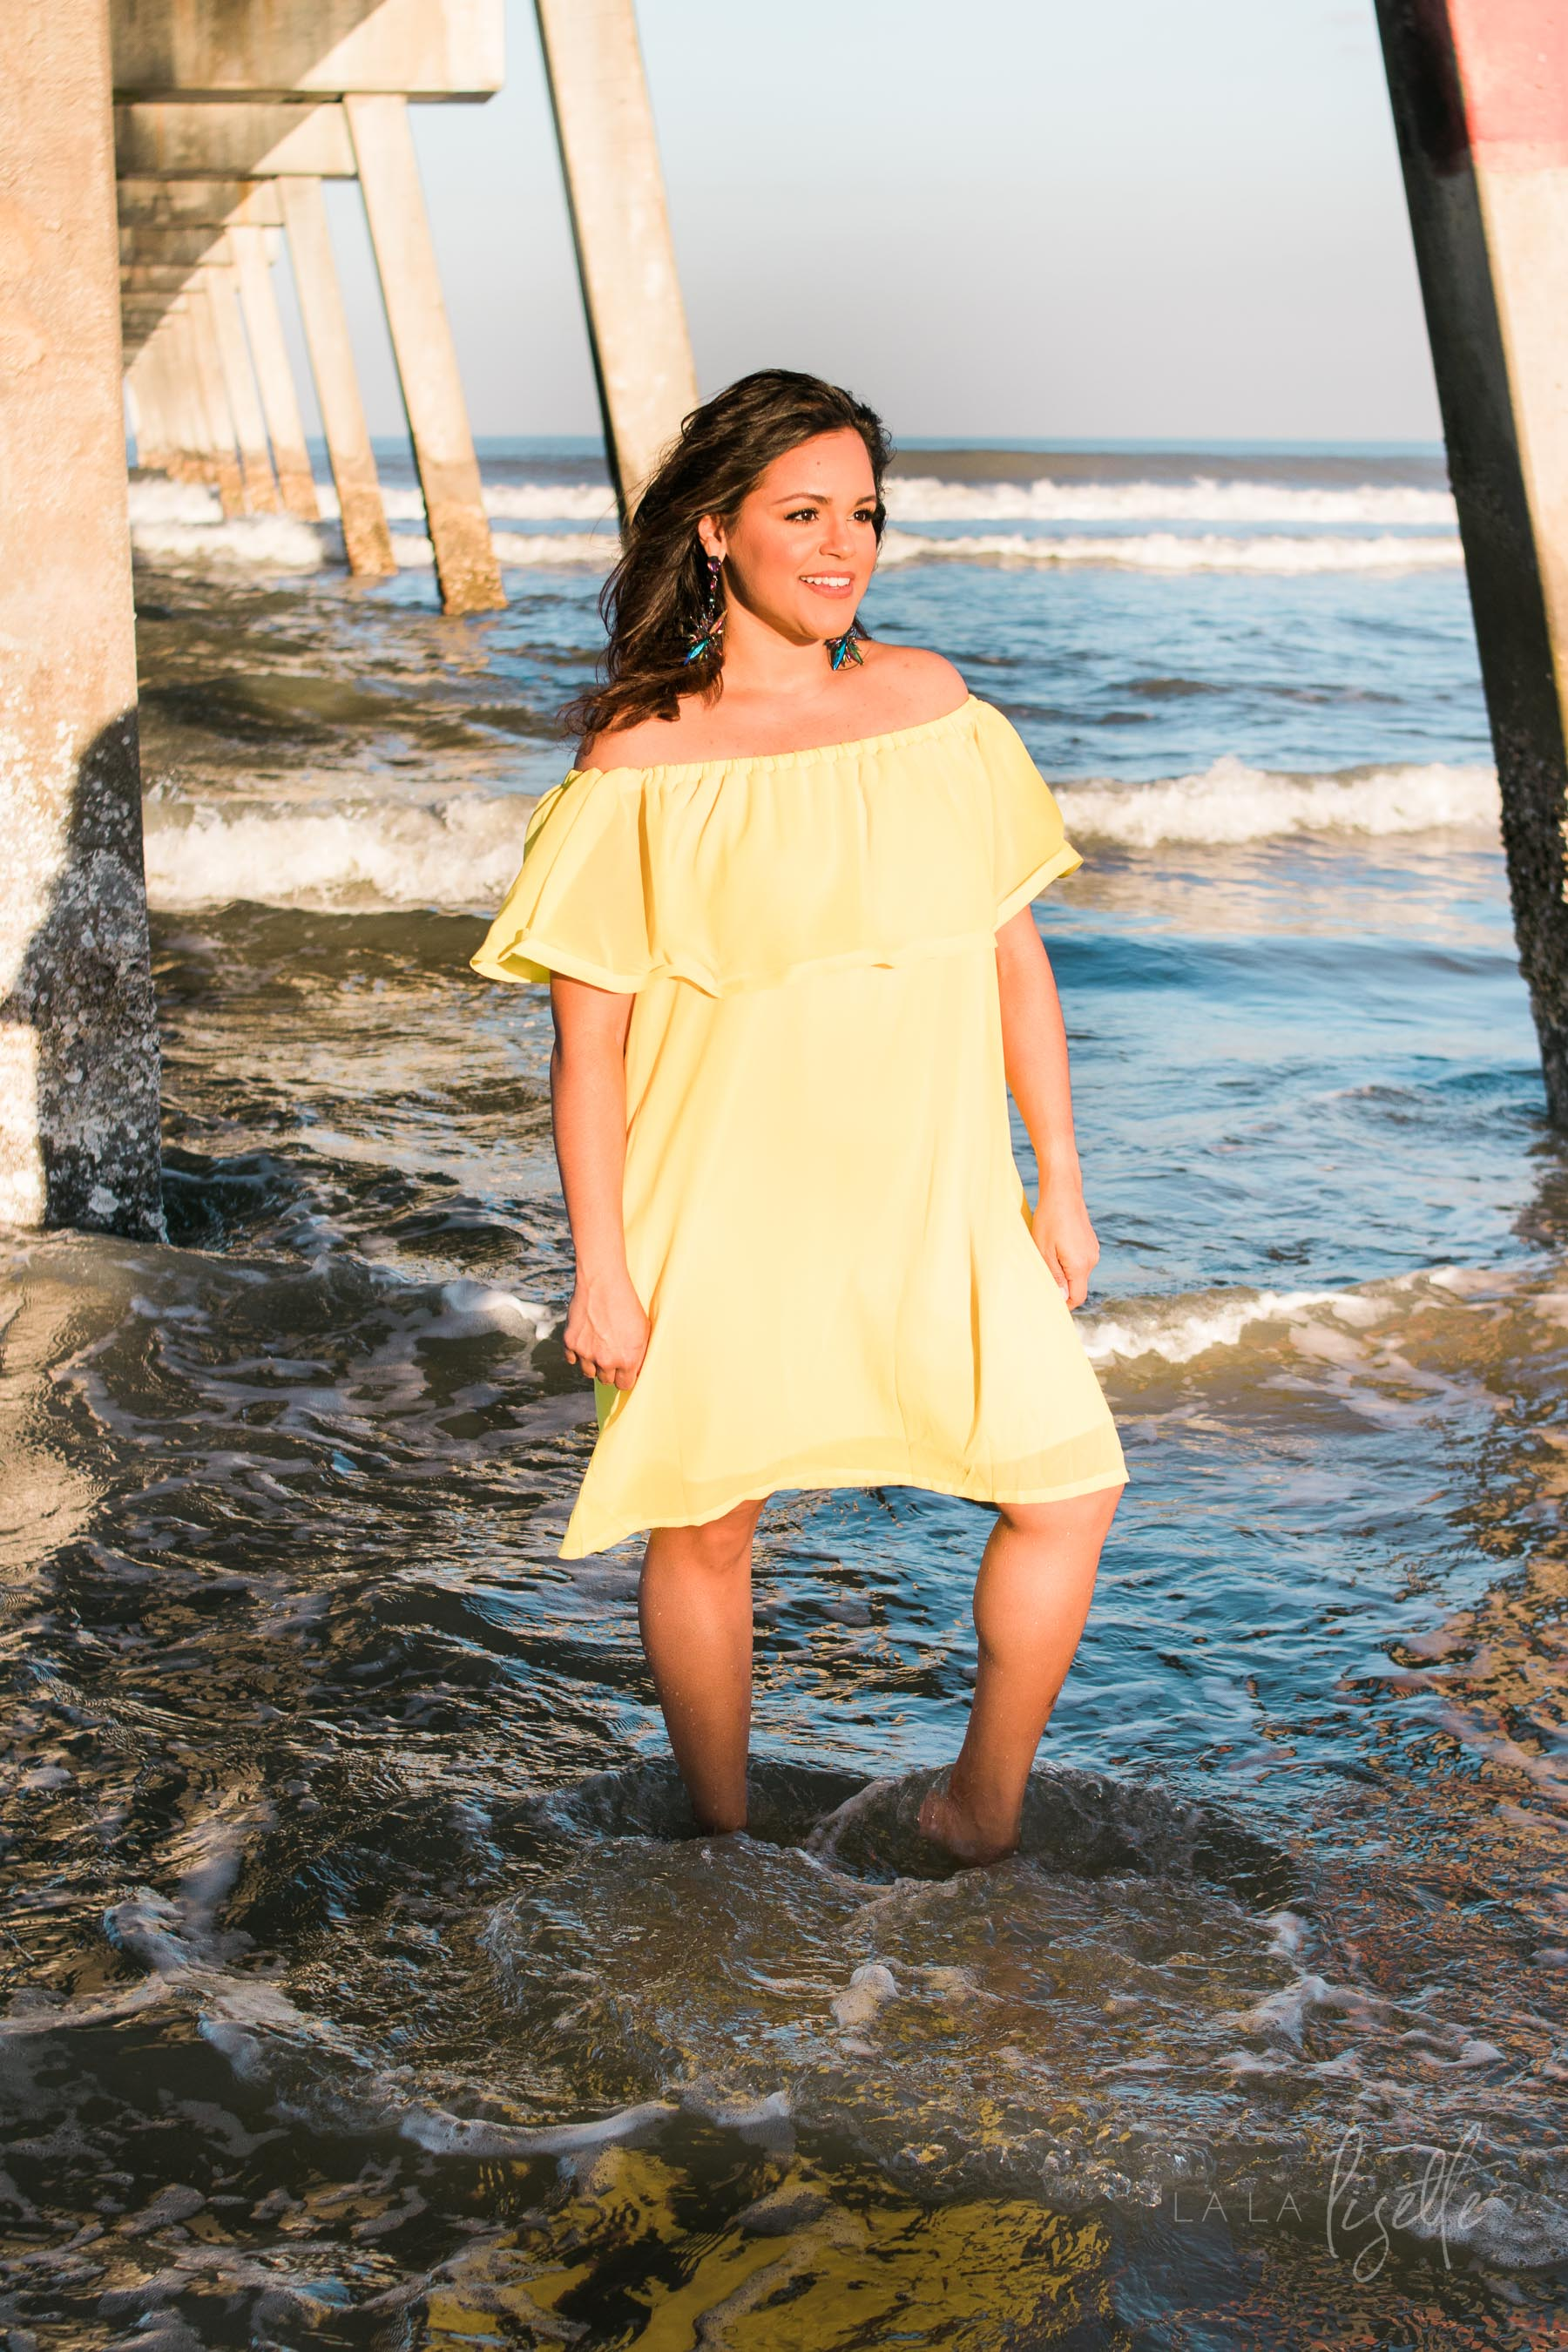 brunette woman standing under pier wearing yellow sundress